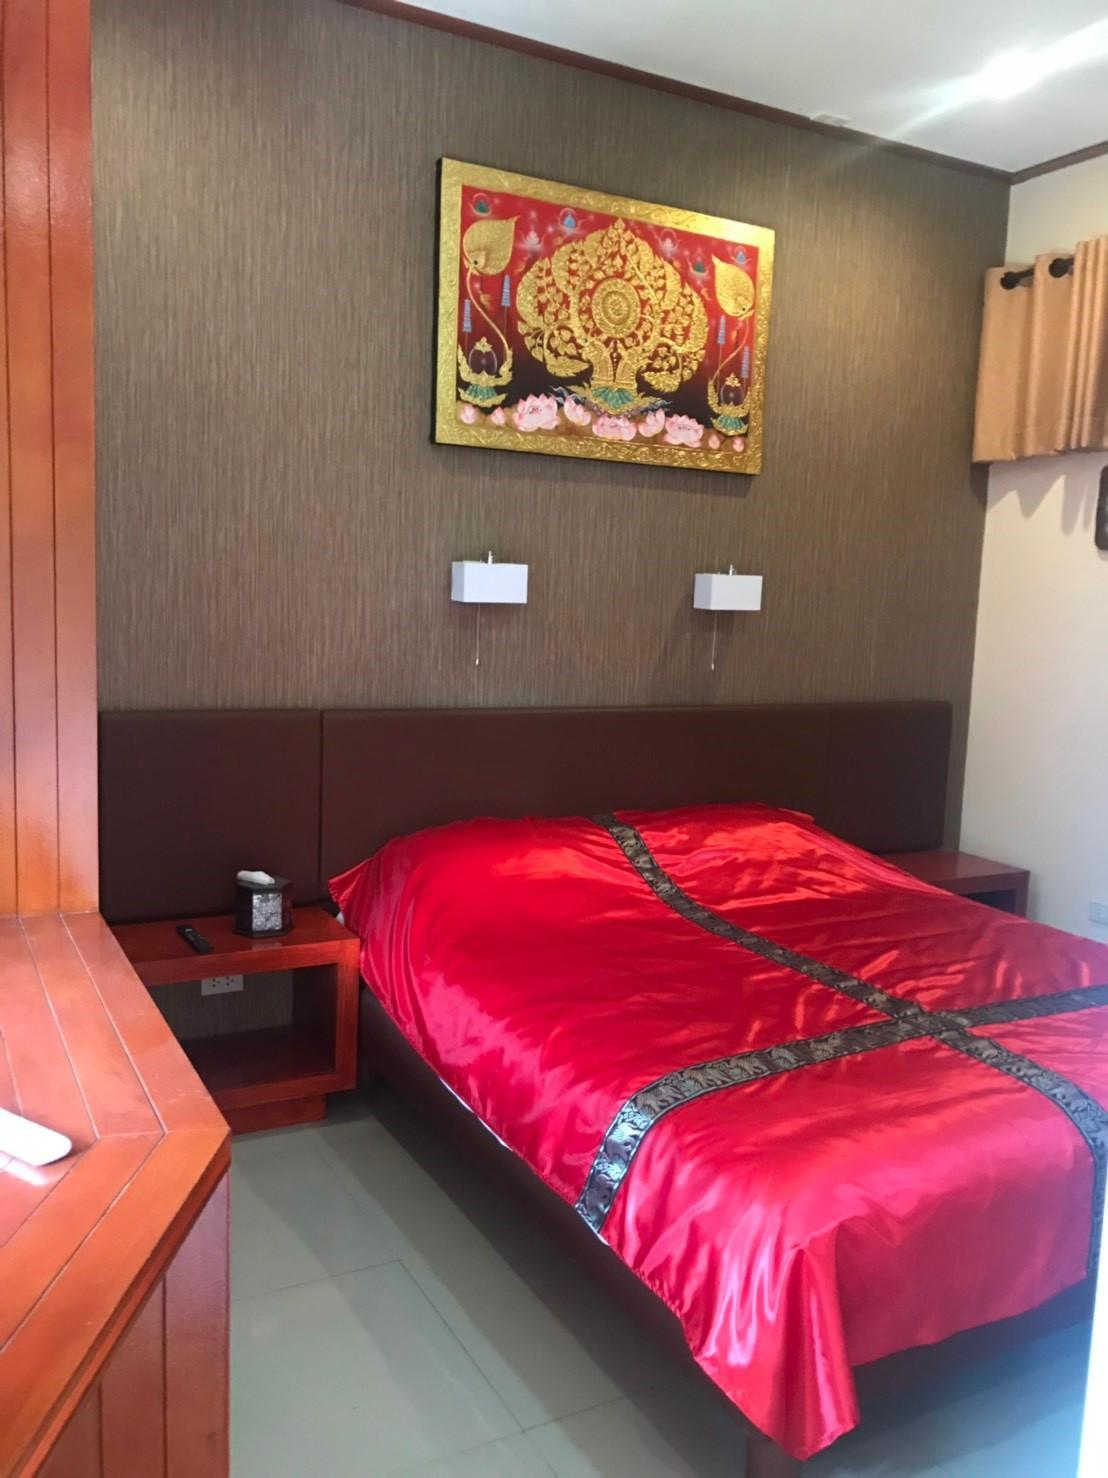 Itsari's Guest House